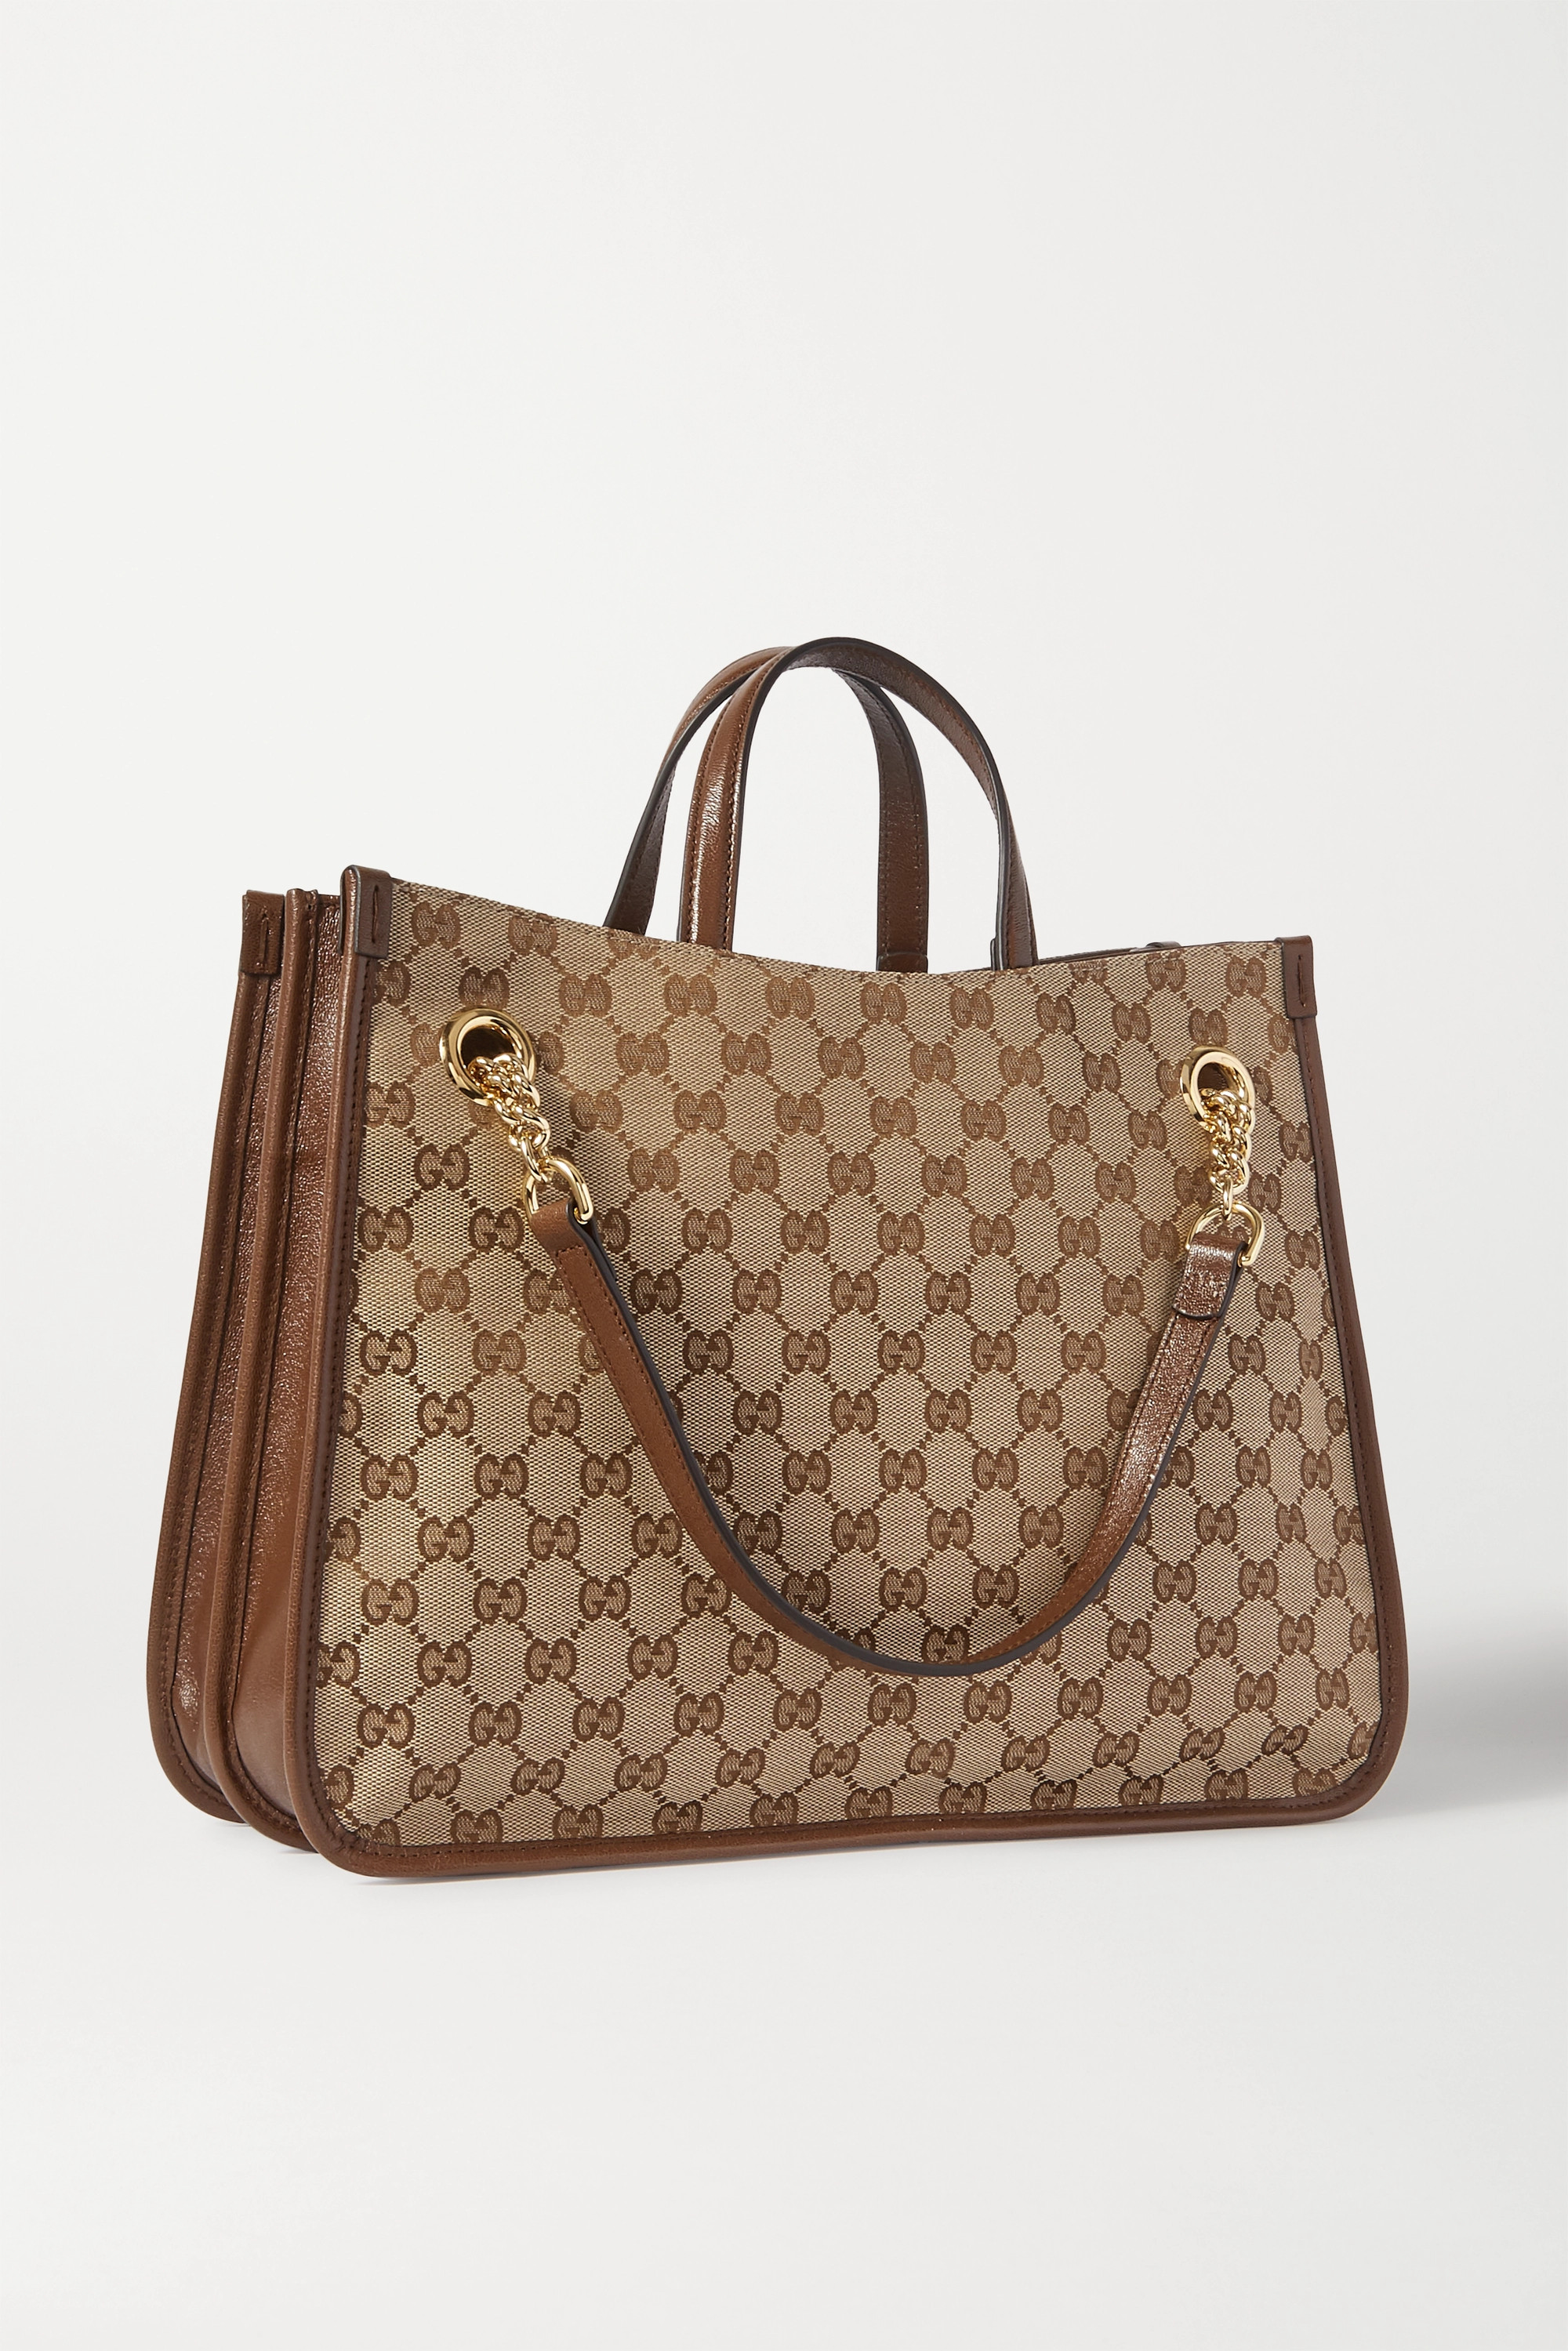 Gucci 1955 Horsebit medium leather-trimmed printed coated-canvas tote